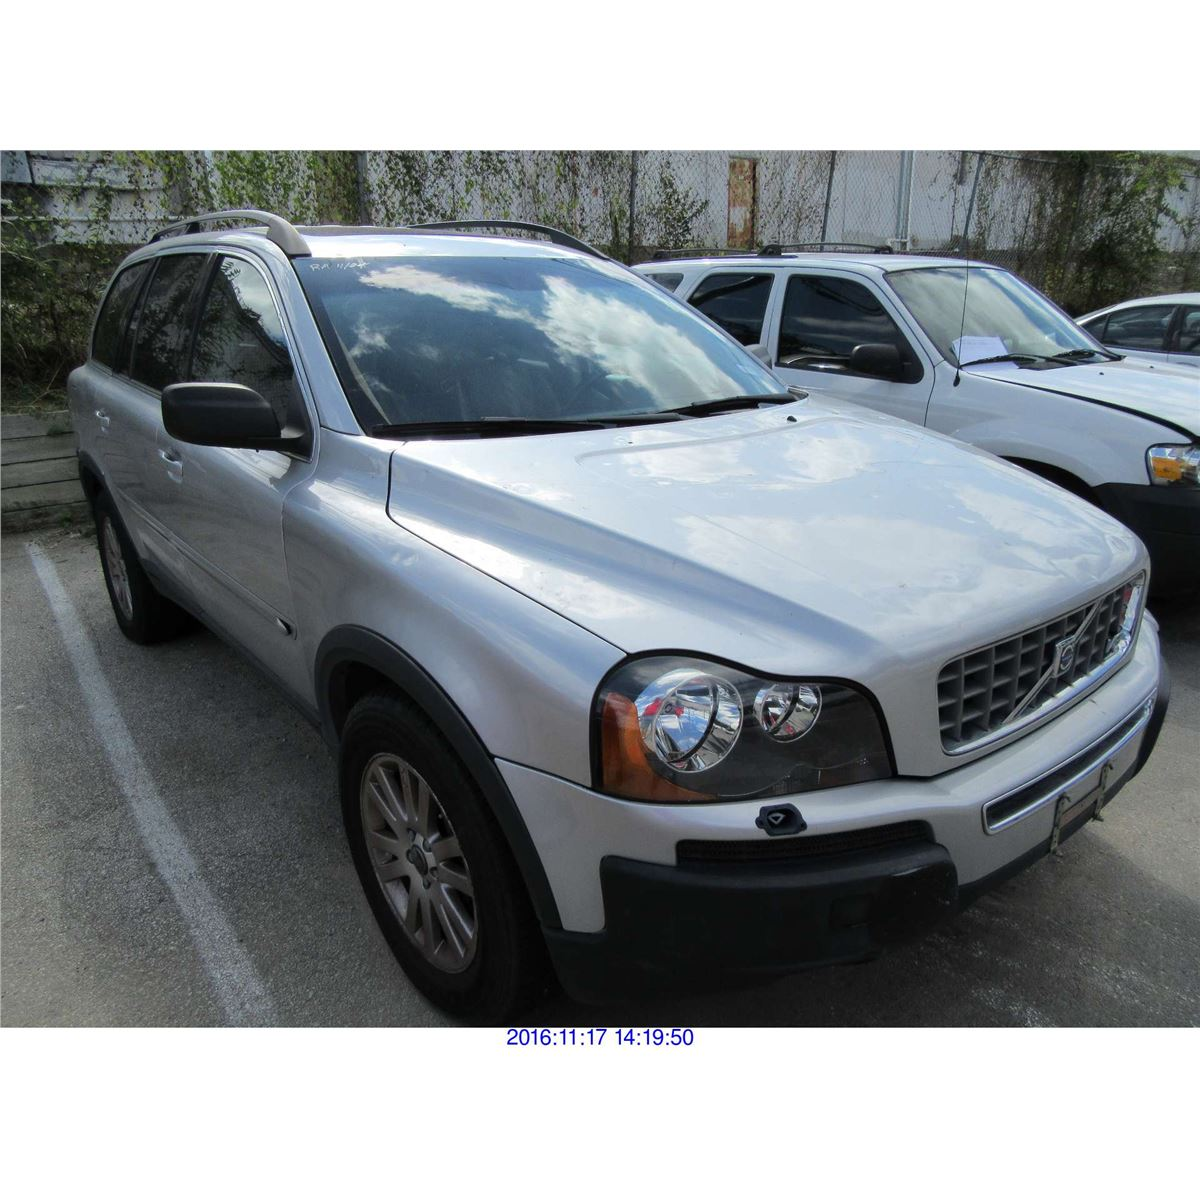 2005 volvo xc90 rebuilt salvage. Black Bedroom Furniture Sets. Home Design Ideas